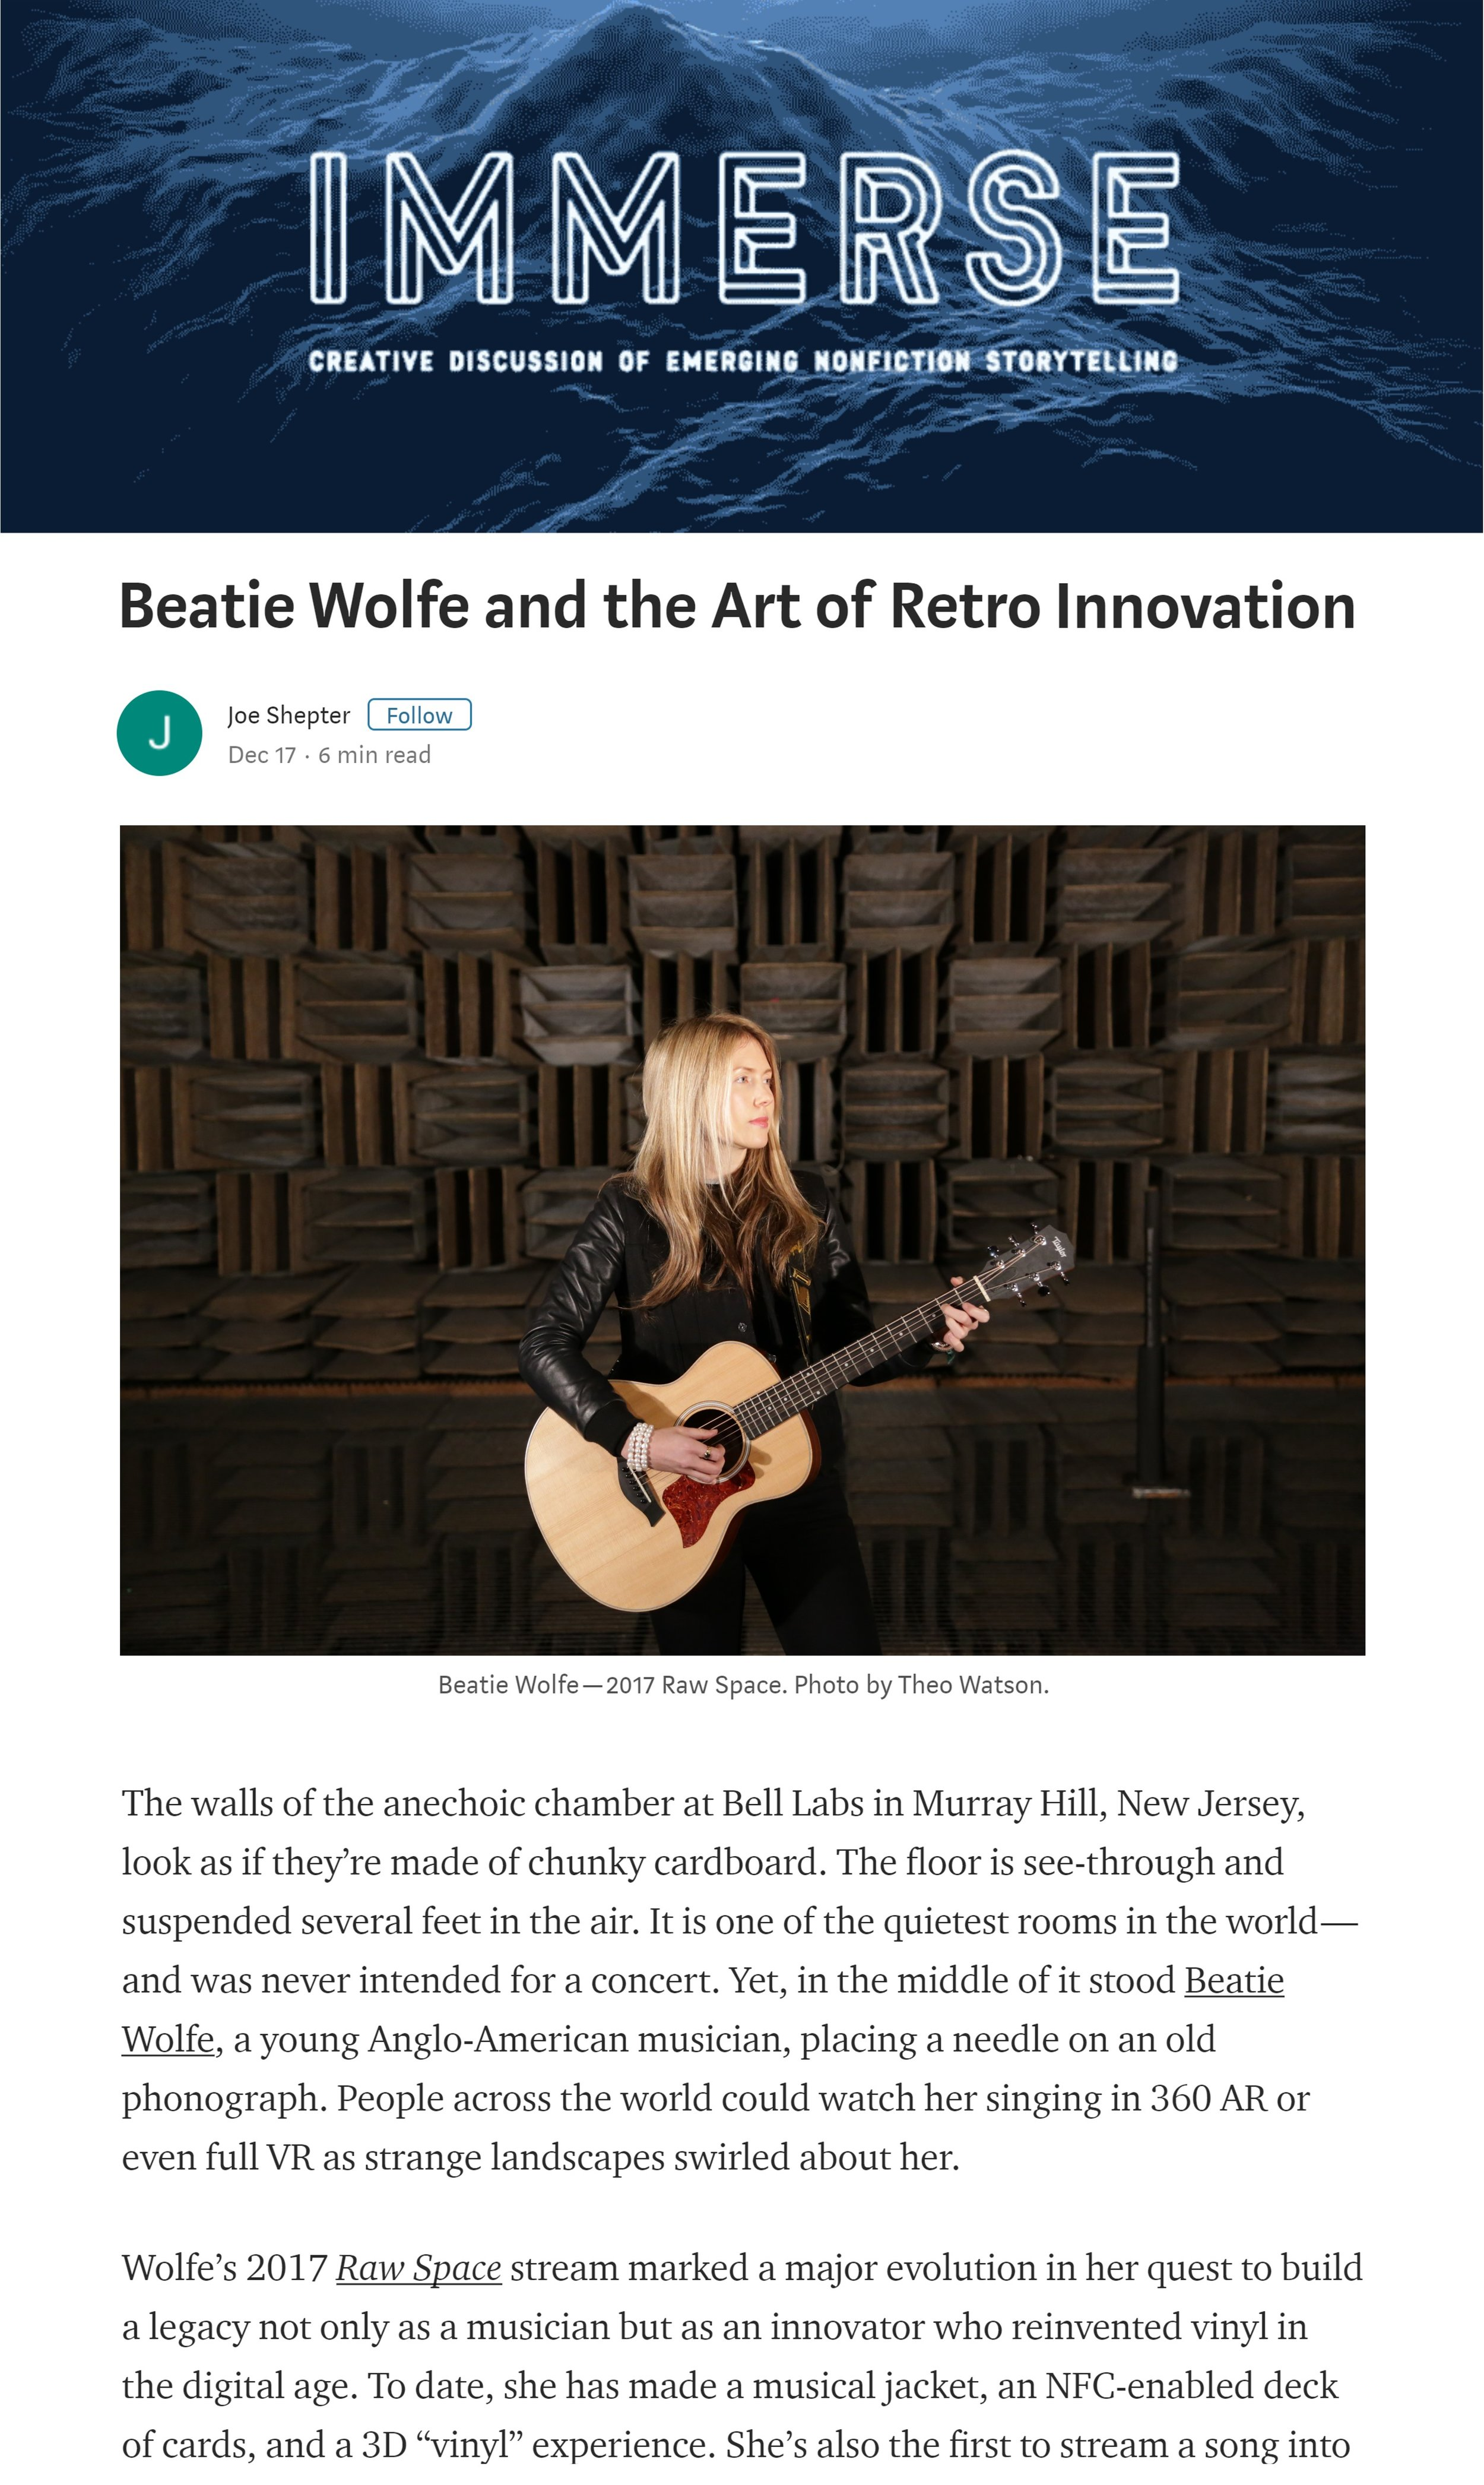 Immerse Magazine article on Beatie Wolfe